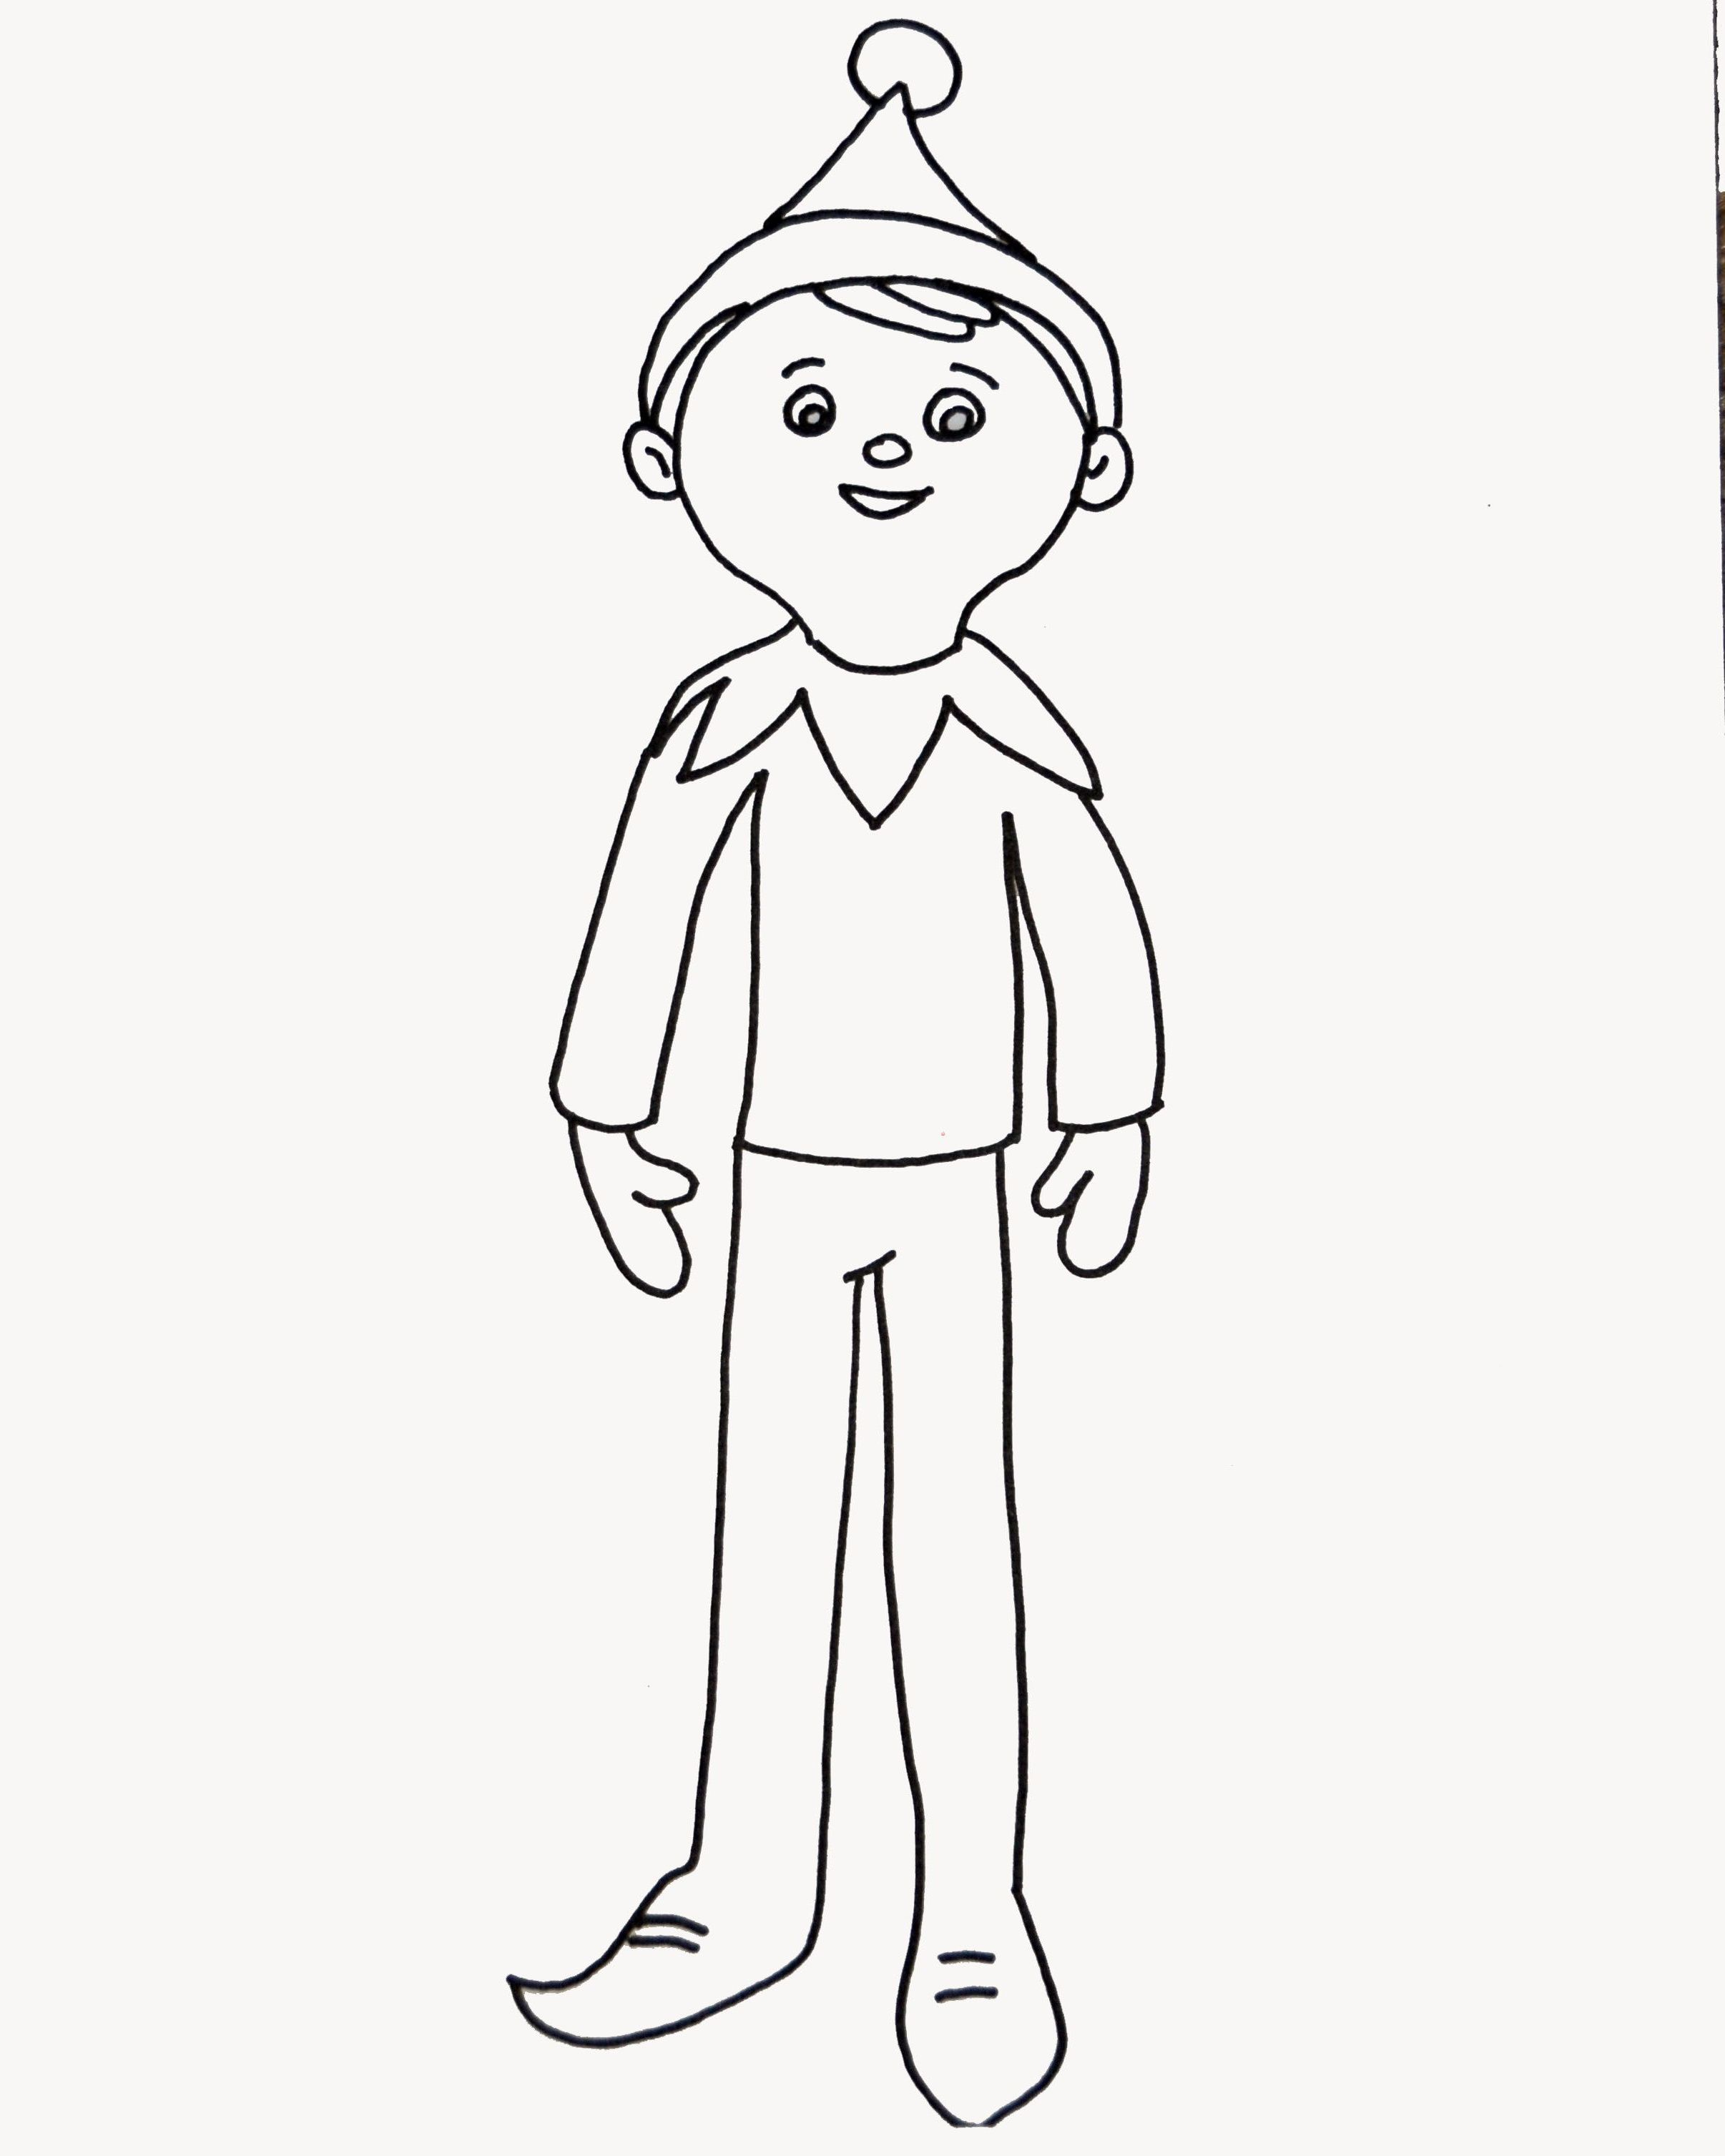 Elf On The Shelf Coloring Sheet New Collection Elf On The